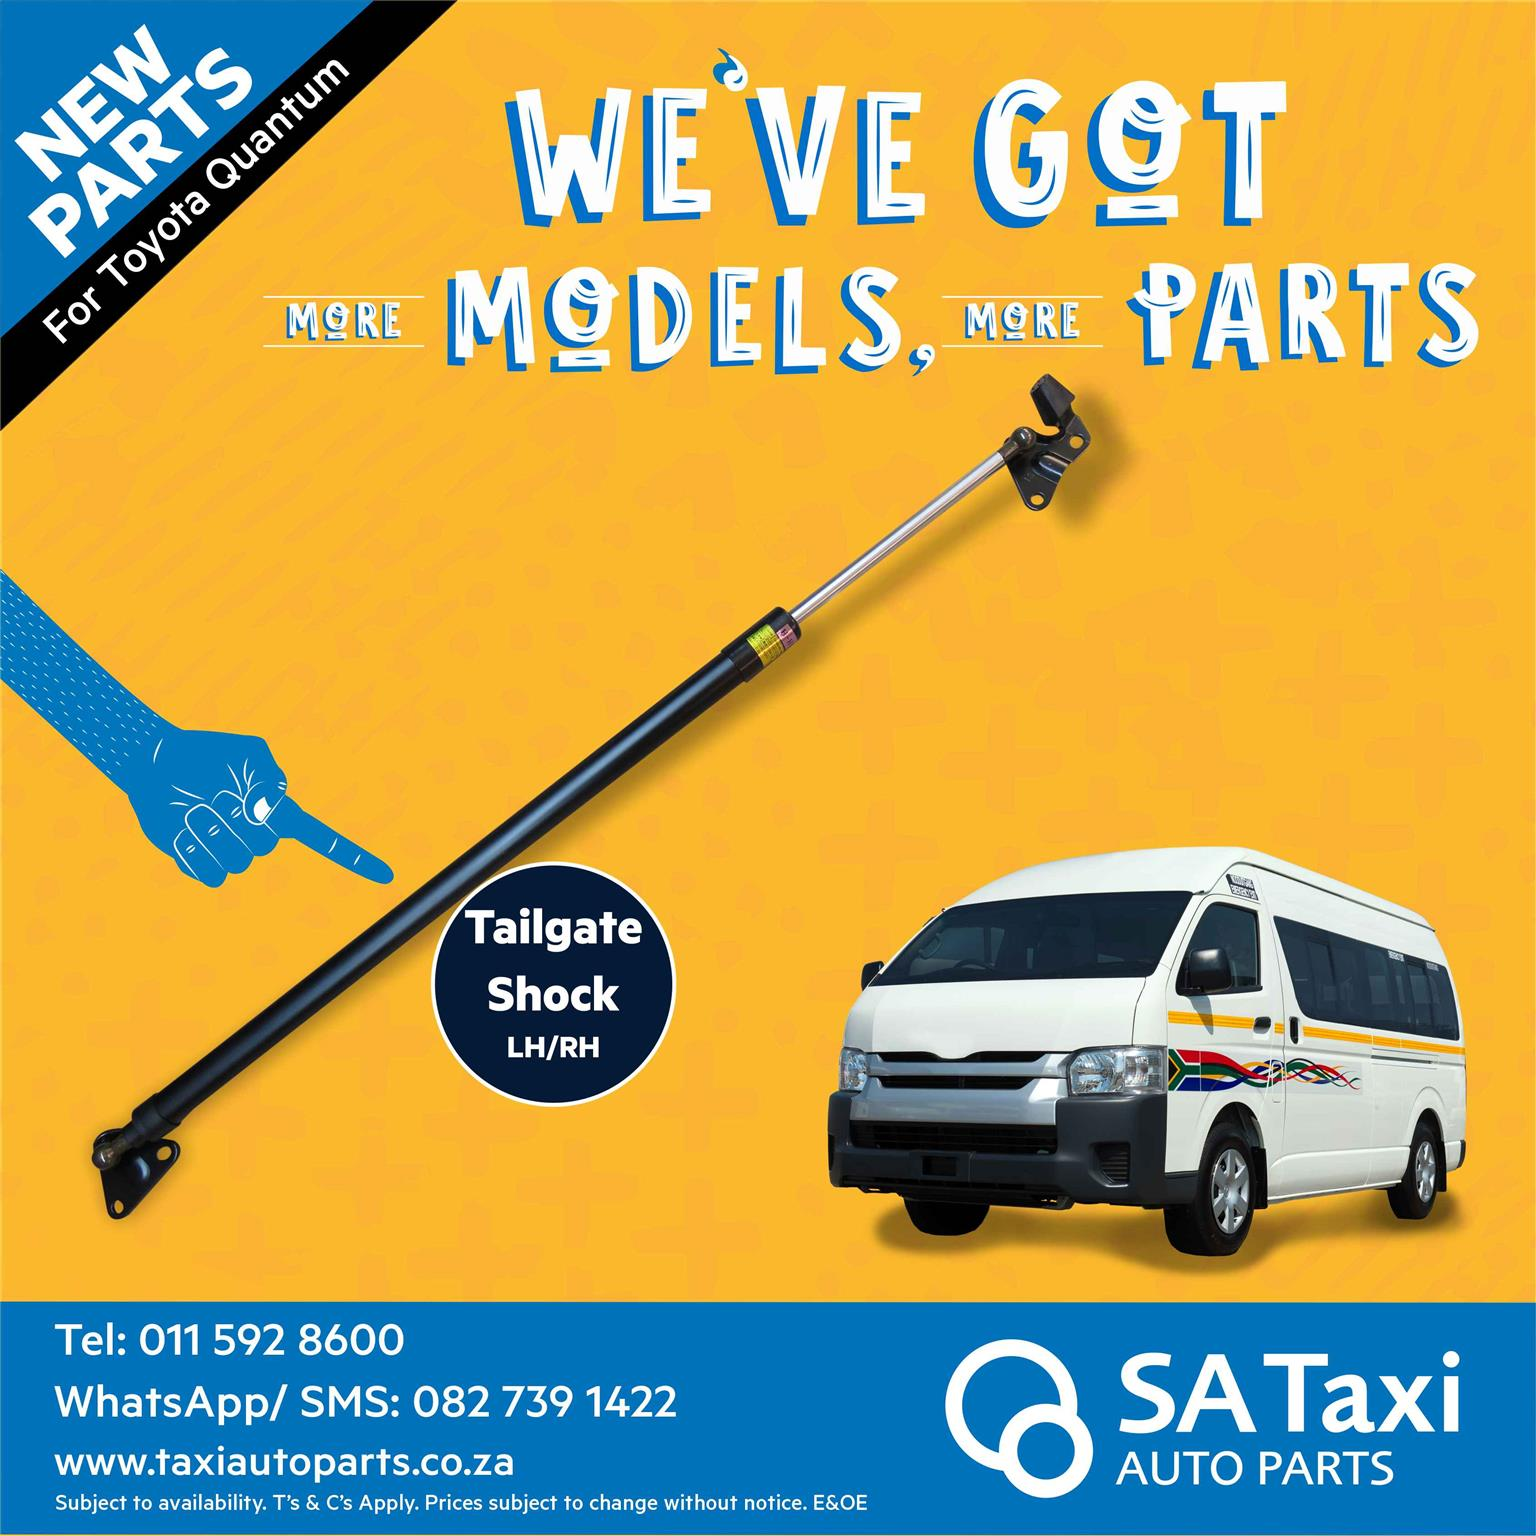 New Tailgate Shock suitable for Toyota Quantum - SA Taxi Auto Parts quality taxi spares